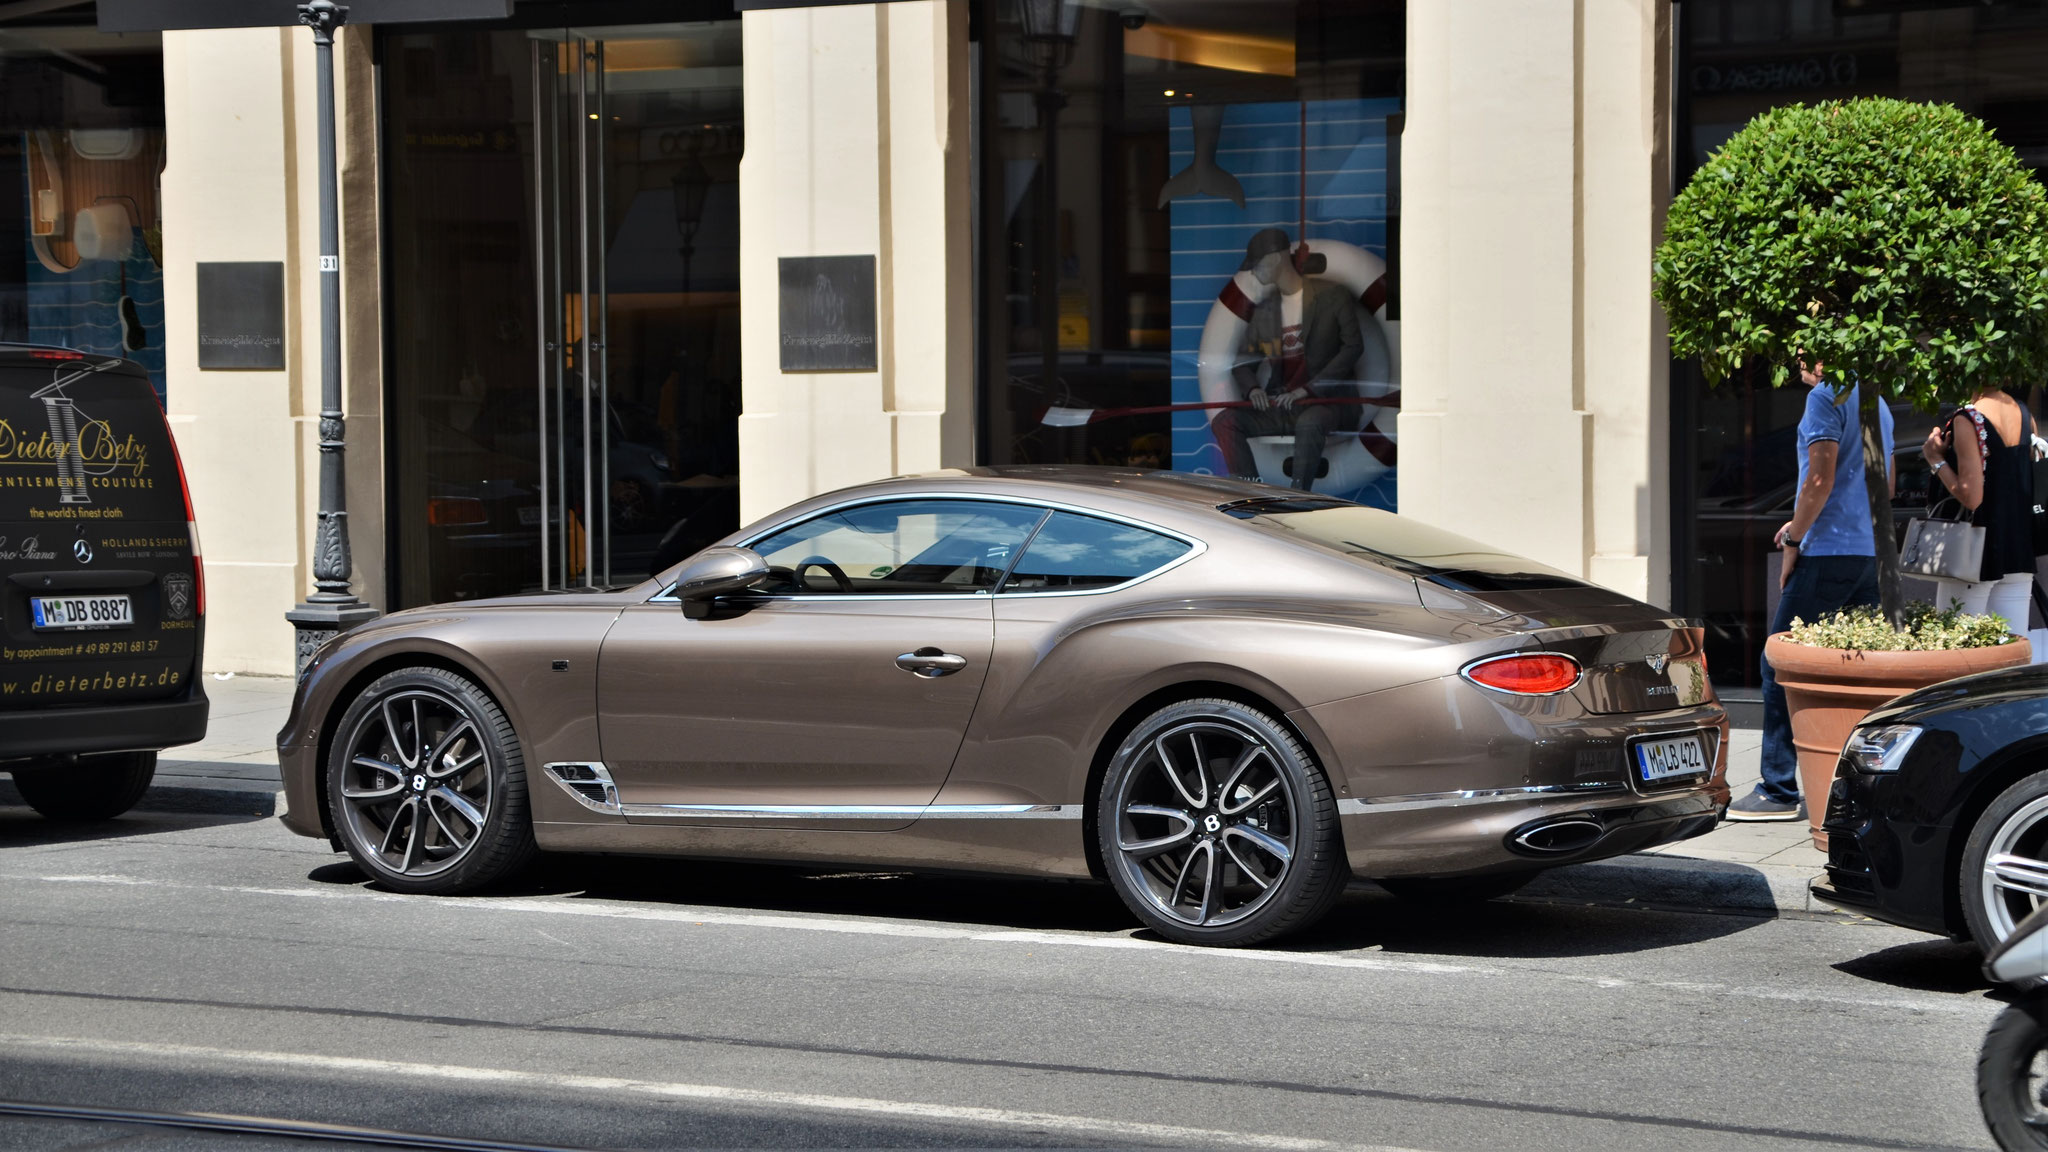 Bentley Continental GT - M-LB-422